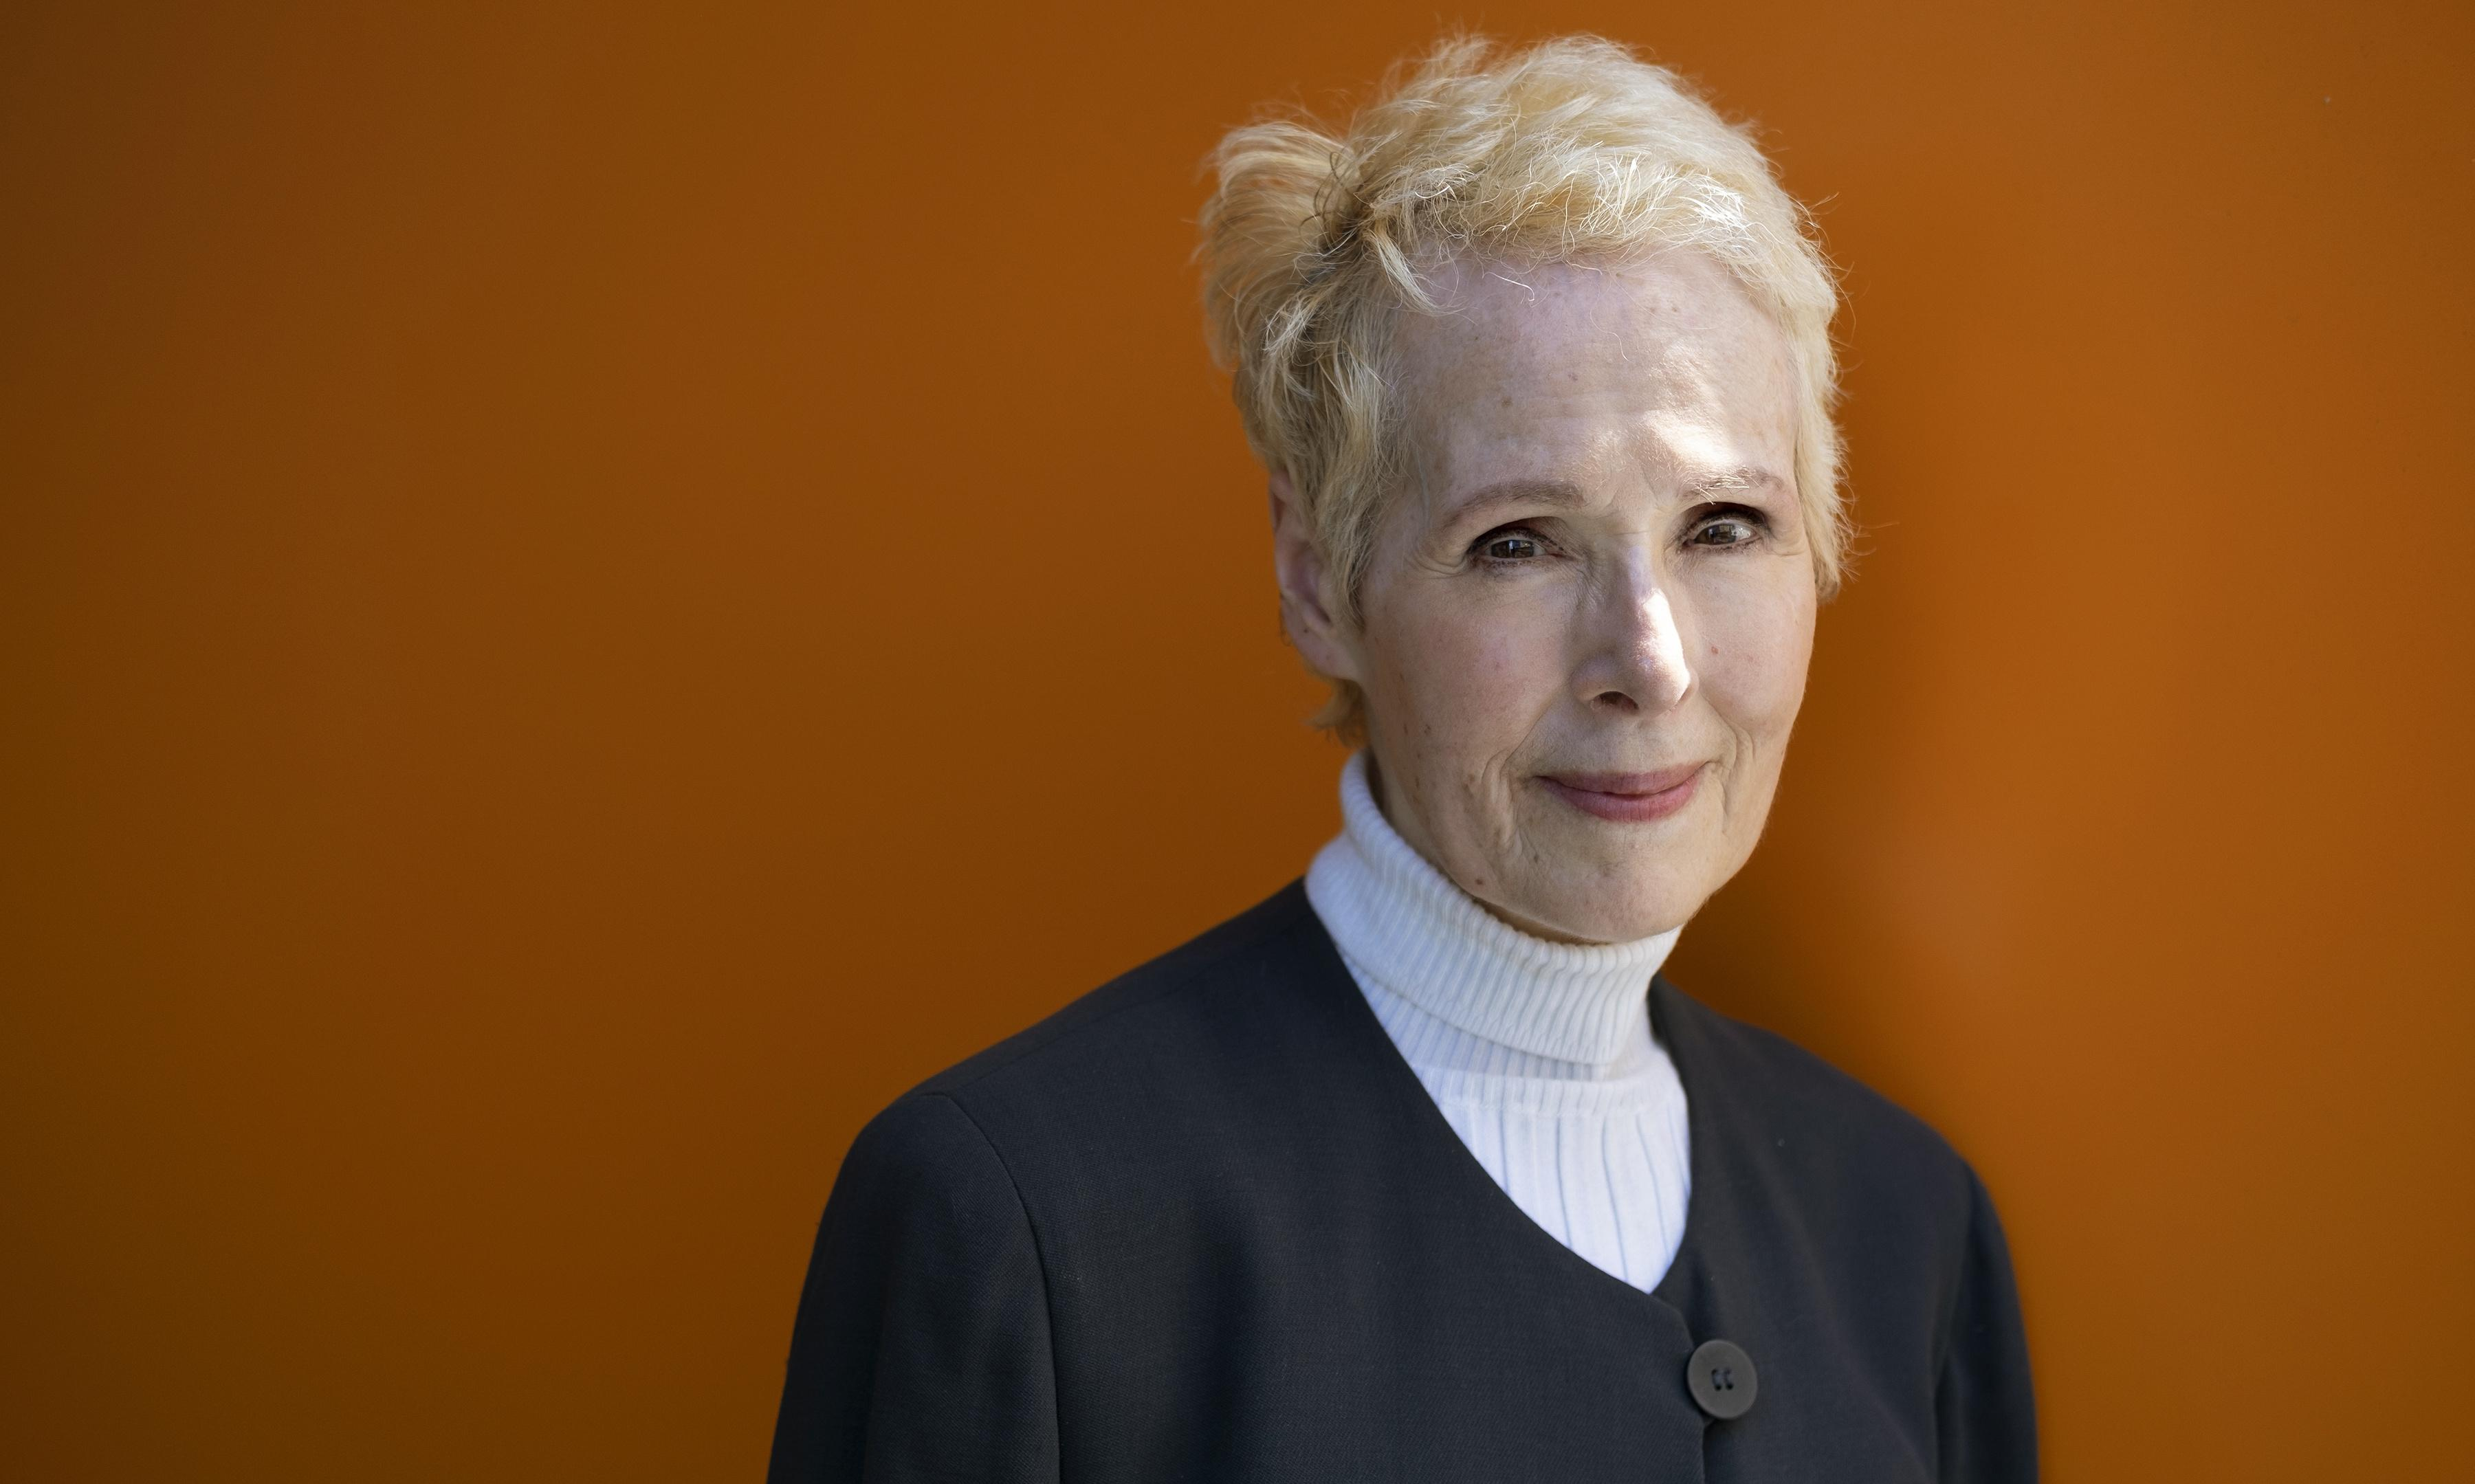 E Jean Carroll says she received death threats after accusing Trump of rape